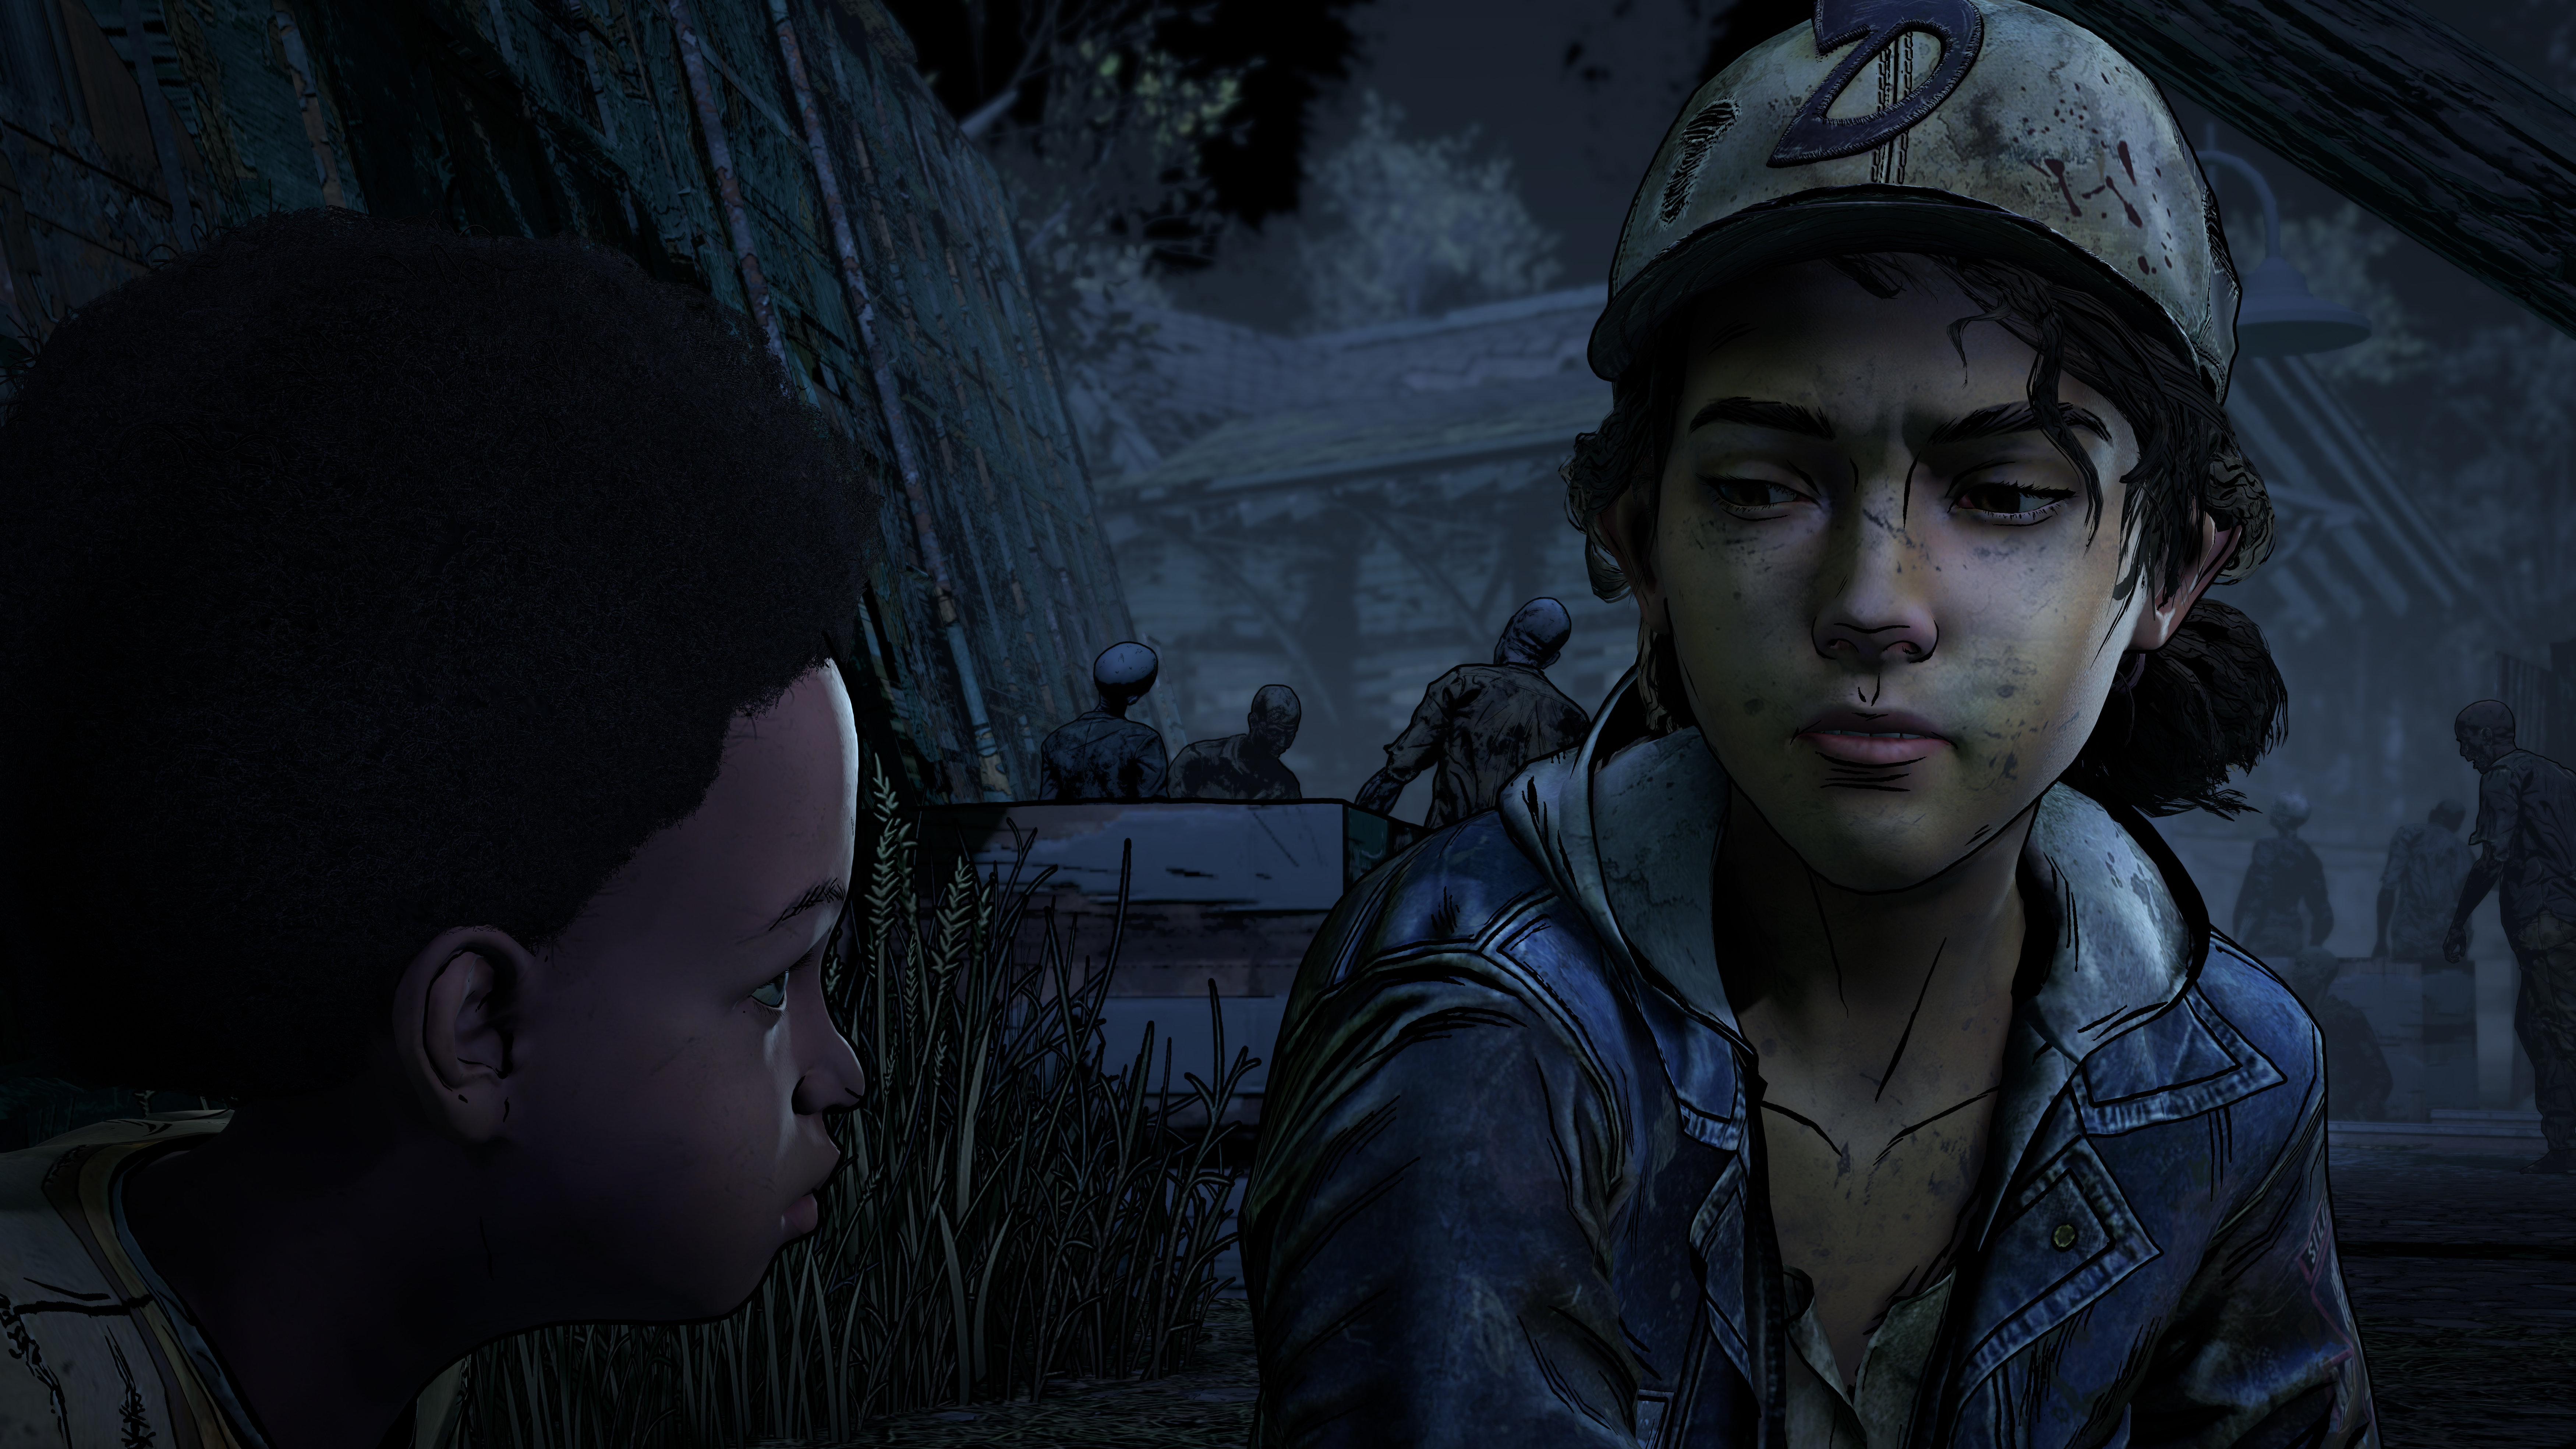 The Walking Dead: The Final Season - Clem and AJ